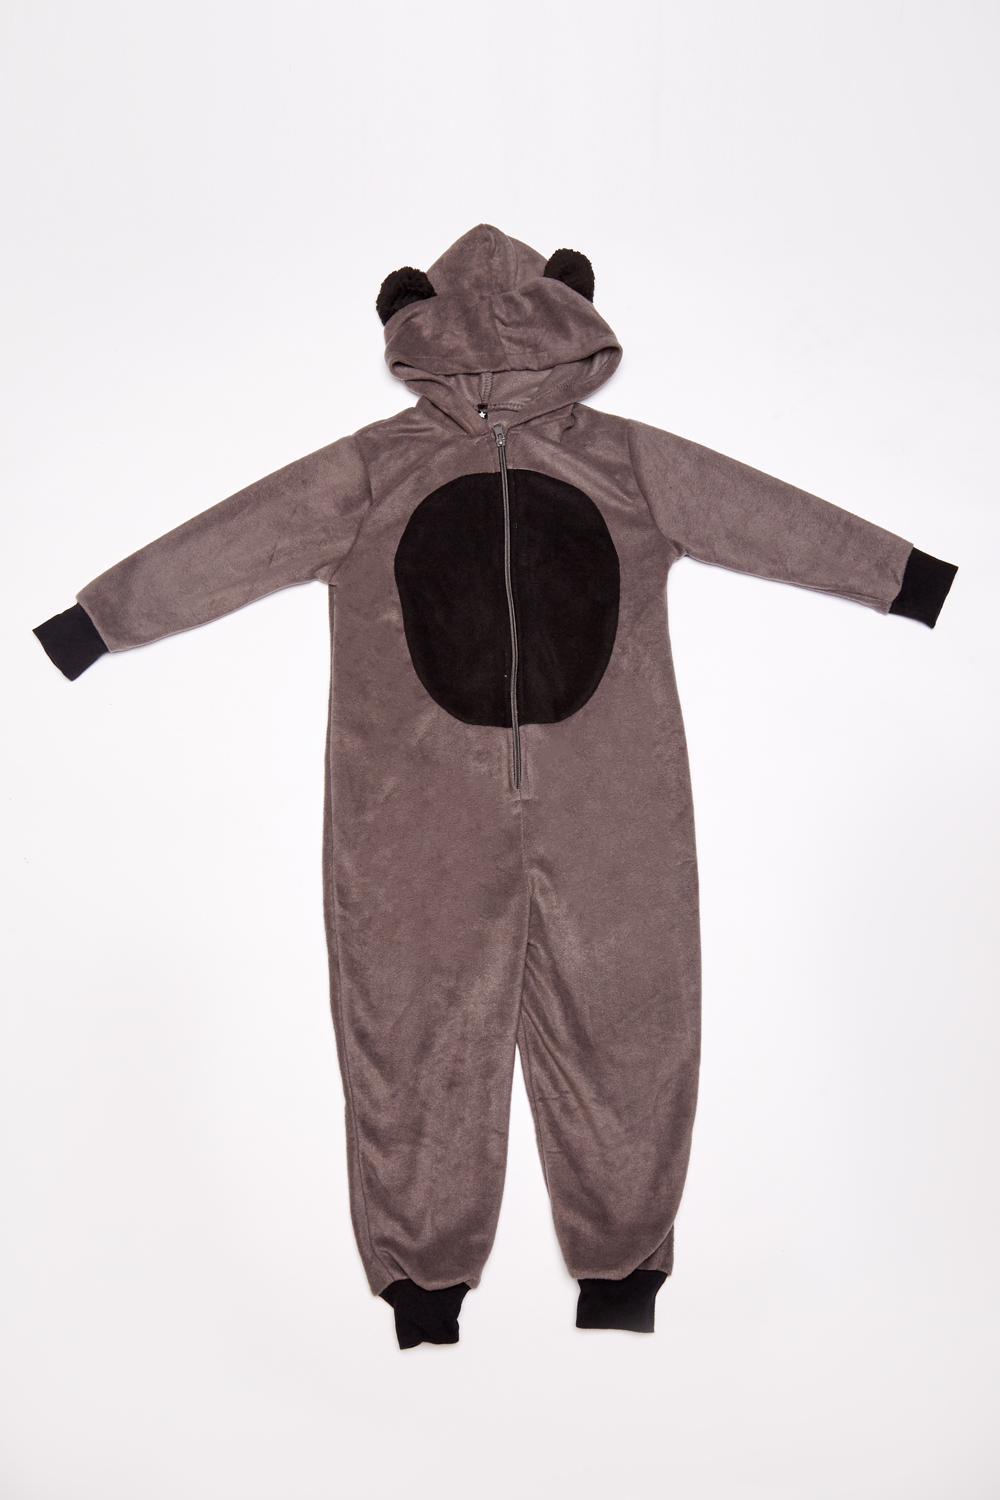 Polar Bear Onesie. In order to add this product to your outfit, please remove an item. Find my nearest PRIMARK. Show all in Pyjamas Boys Accessories Girls Accessories Boys Shoes Girls Shoes Pyjamas Home Accessories Bathroom Bedroom.